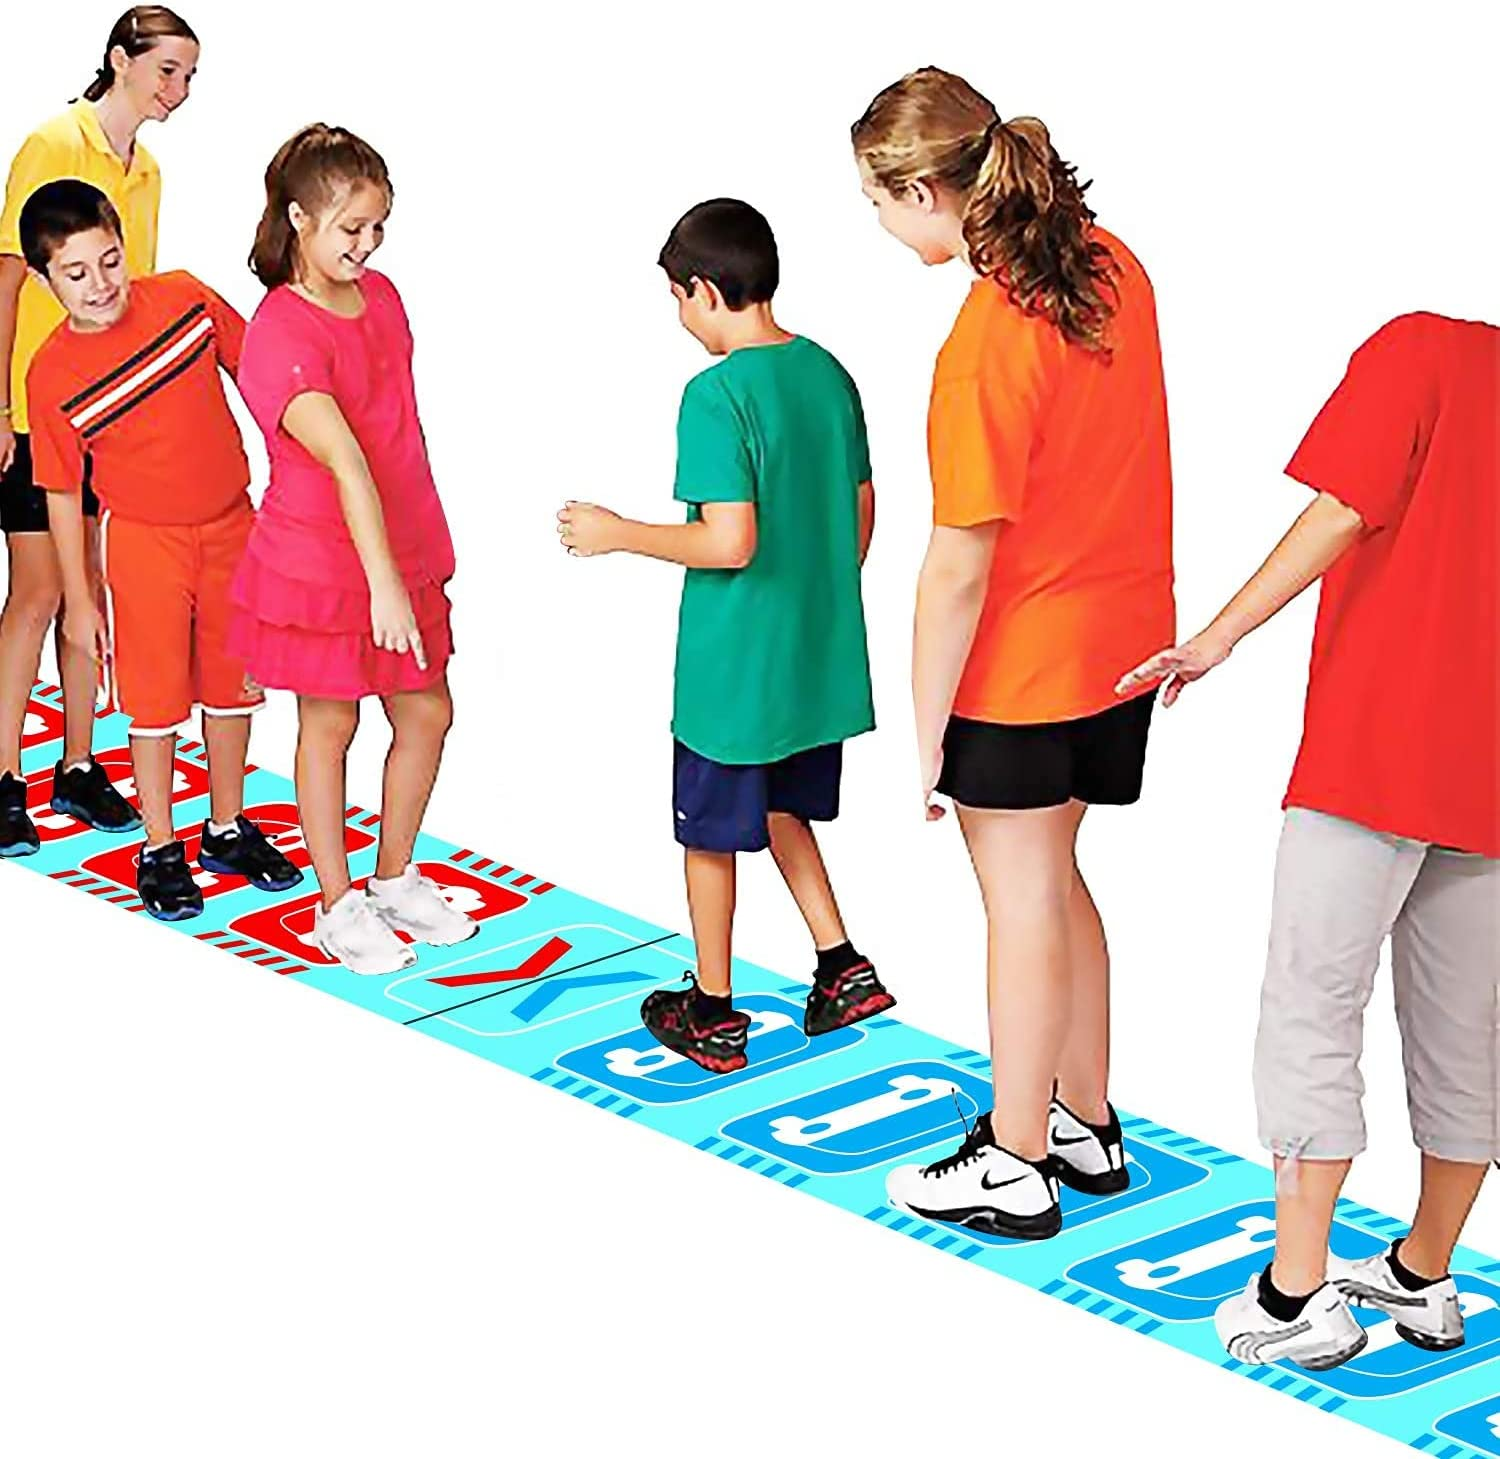 Sonyabecca Traffic Jam Group Games Class Reservation Team Challenge Max 55% OFF Training